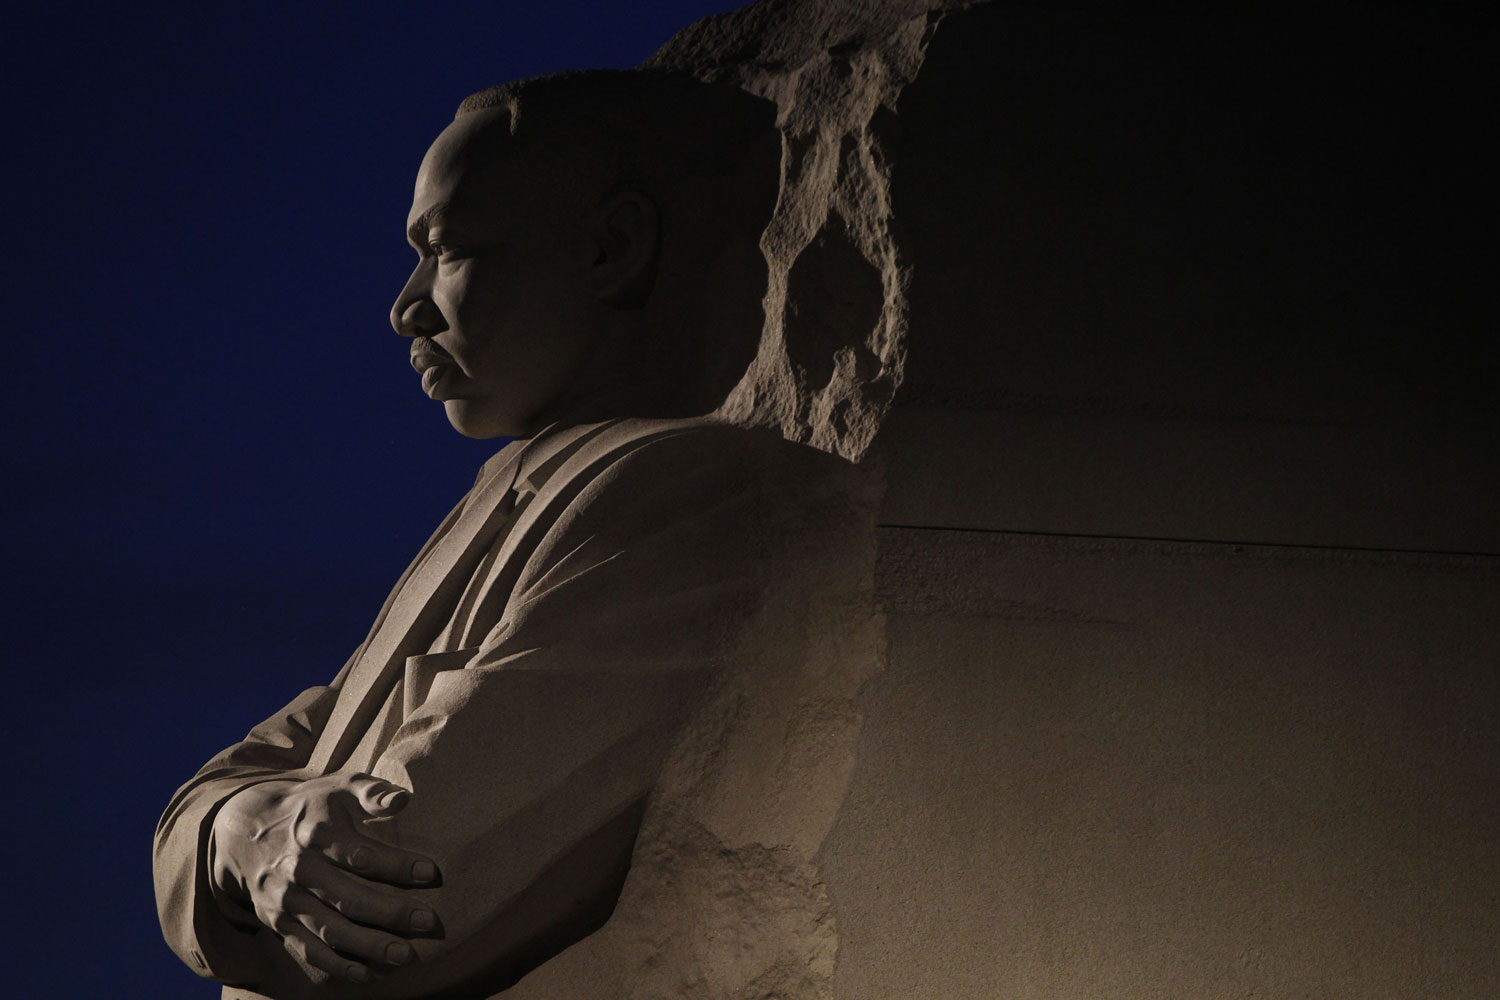 August 22, 2011. The recently finished Martin Luther King Jr. memorial on the National Mall in Washington is set to be dedicated on Aug.28. King, who was assassinated in 1968, would have been 82 thisyear.